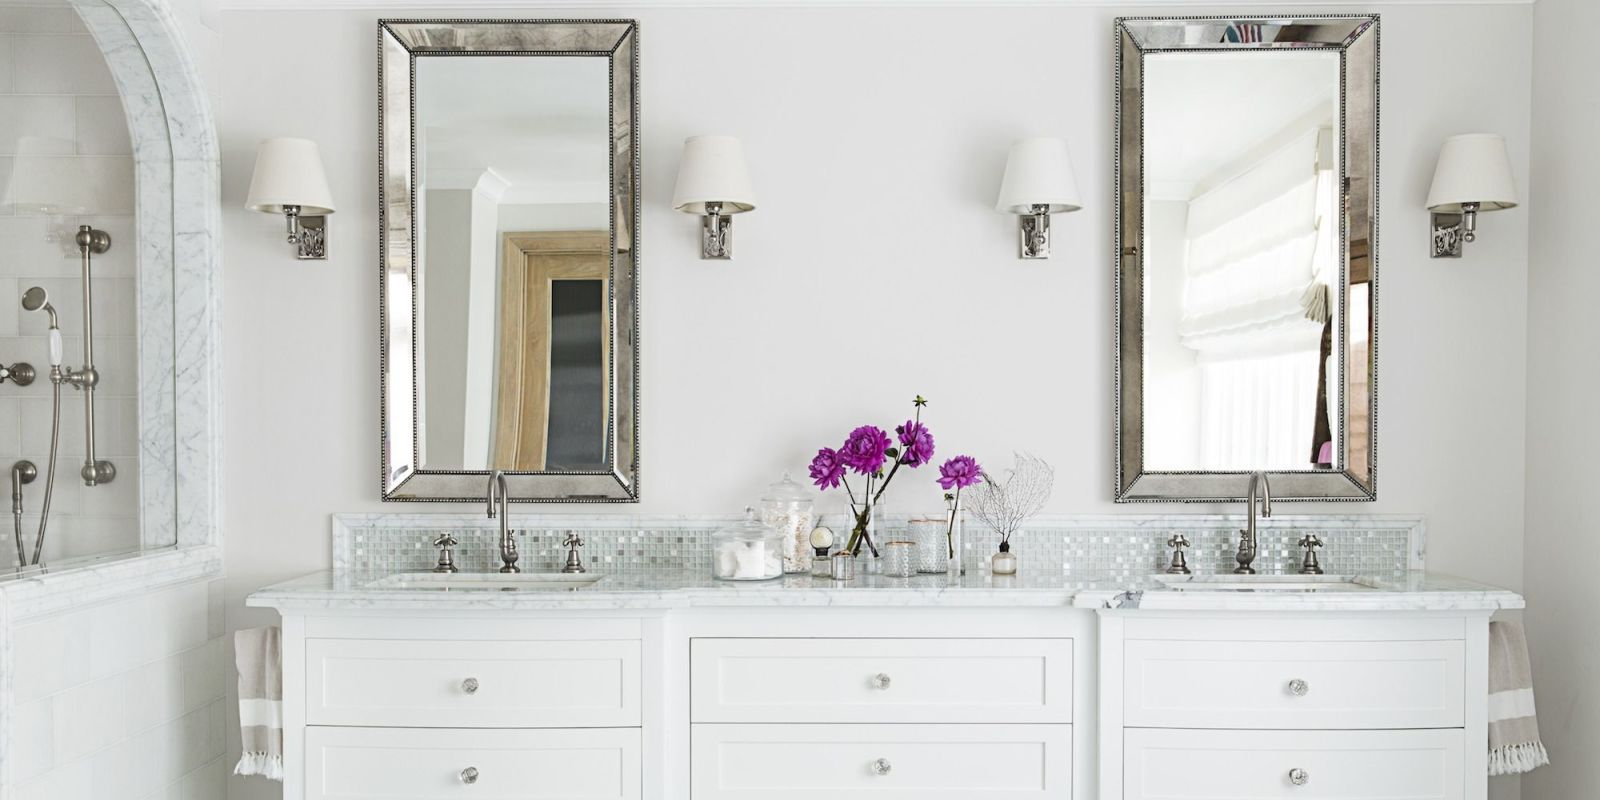 Bathroom Decorating Ideas – Things To Look For